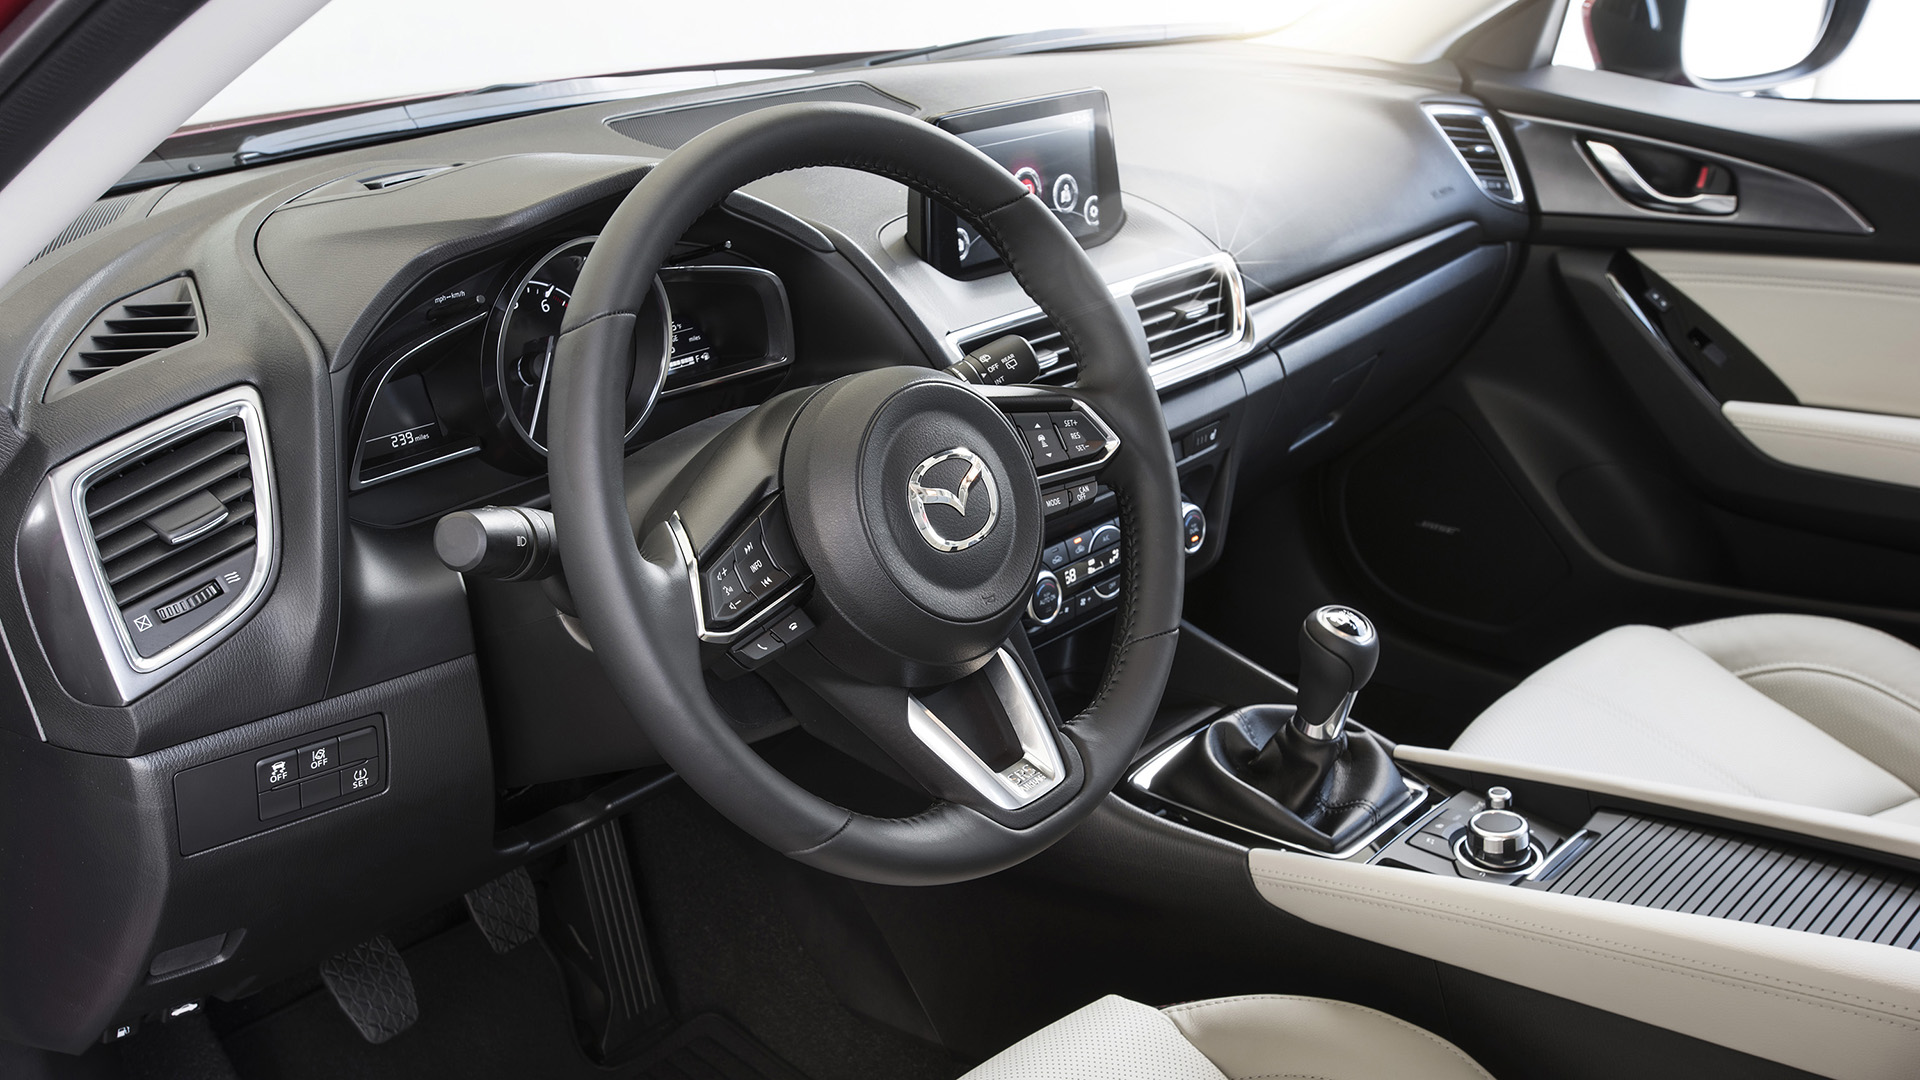 2018 Mazda3 5-Door Grand Touring Review: The Noble Steed of